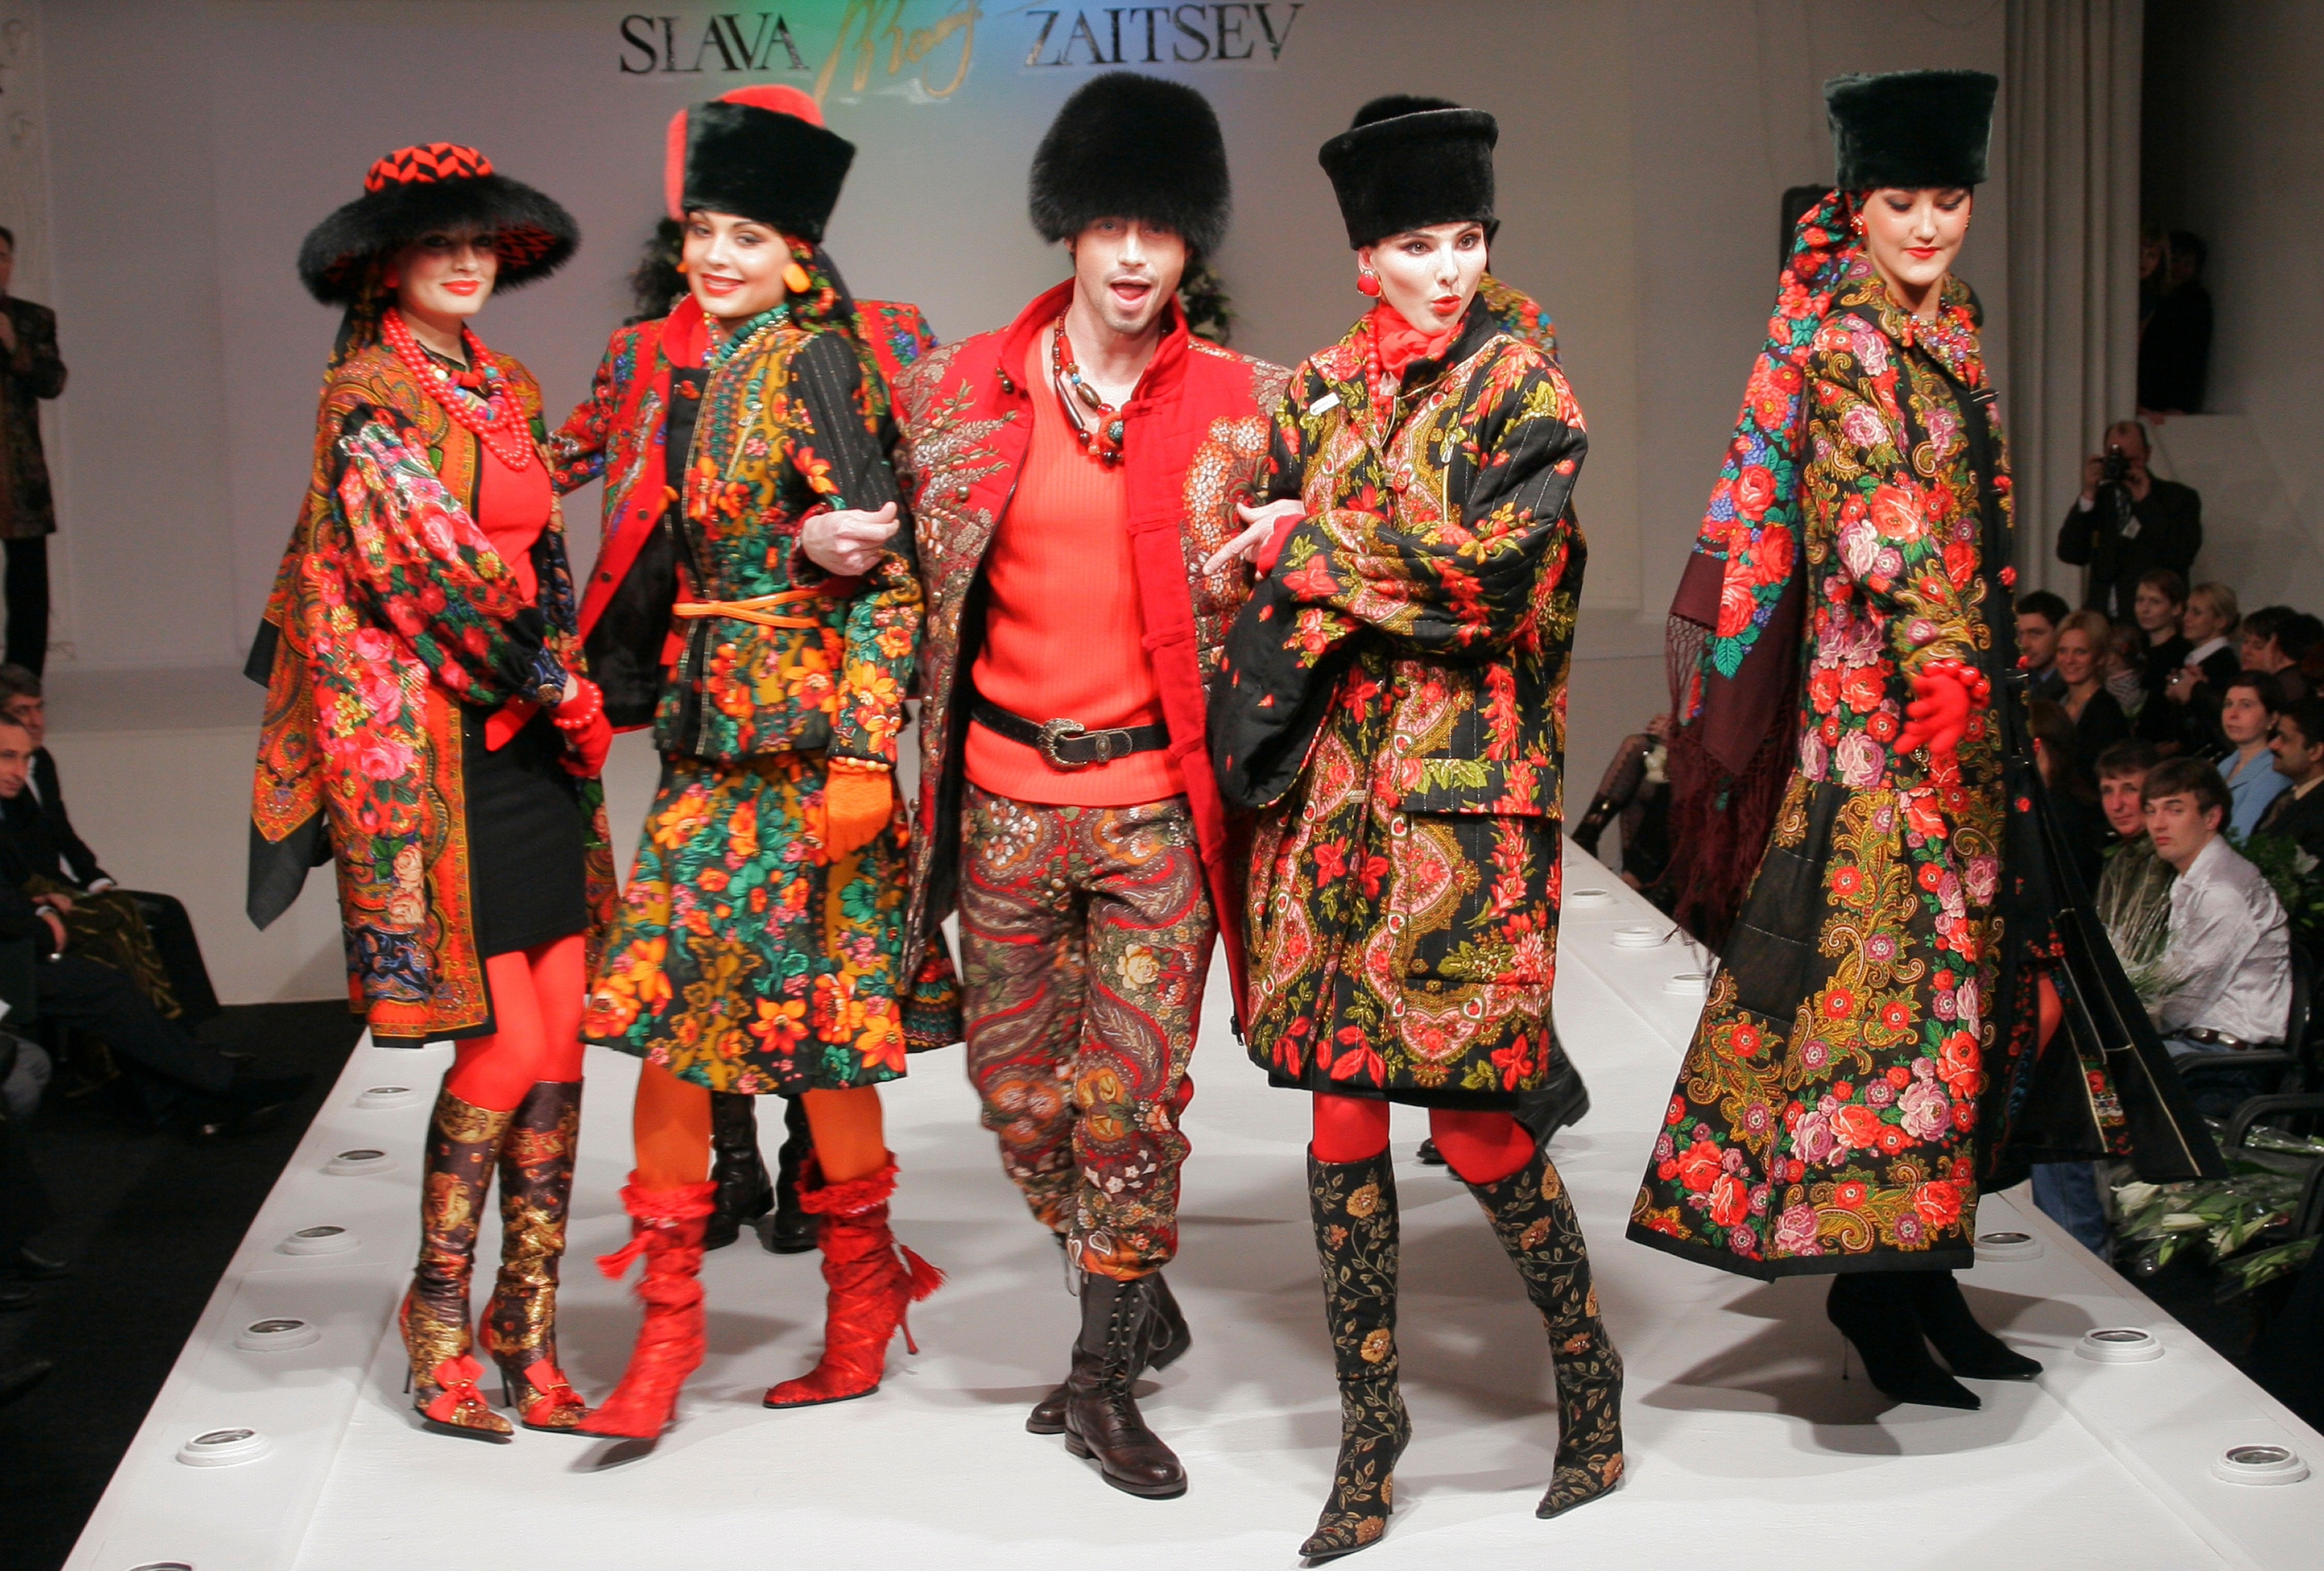 http://upload.wikimedia.org/wikipedia/commons/a/af/Slava_Zaitsev_fashion_show-1.jpg